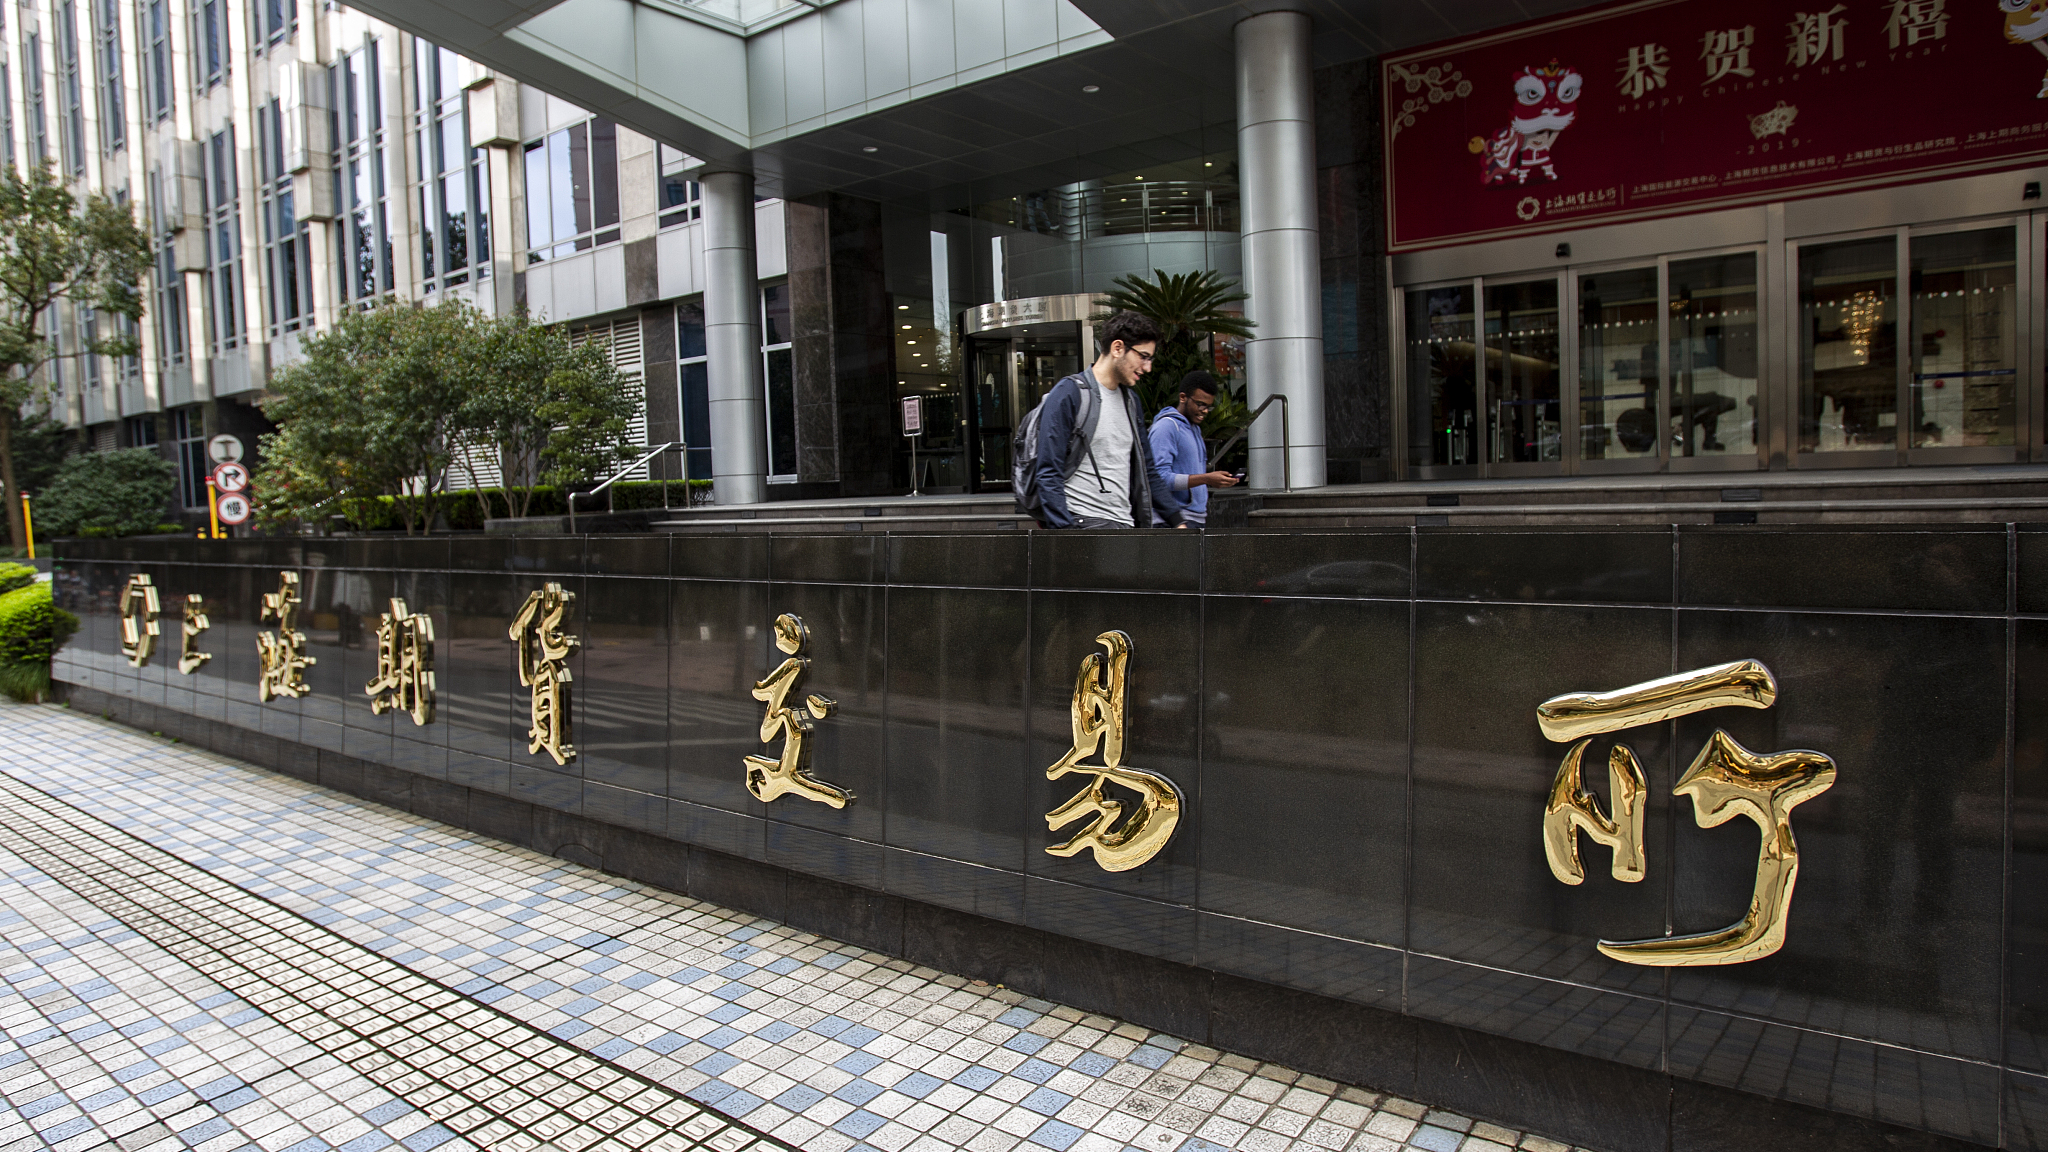 China's futures market sees record turnover in 2020